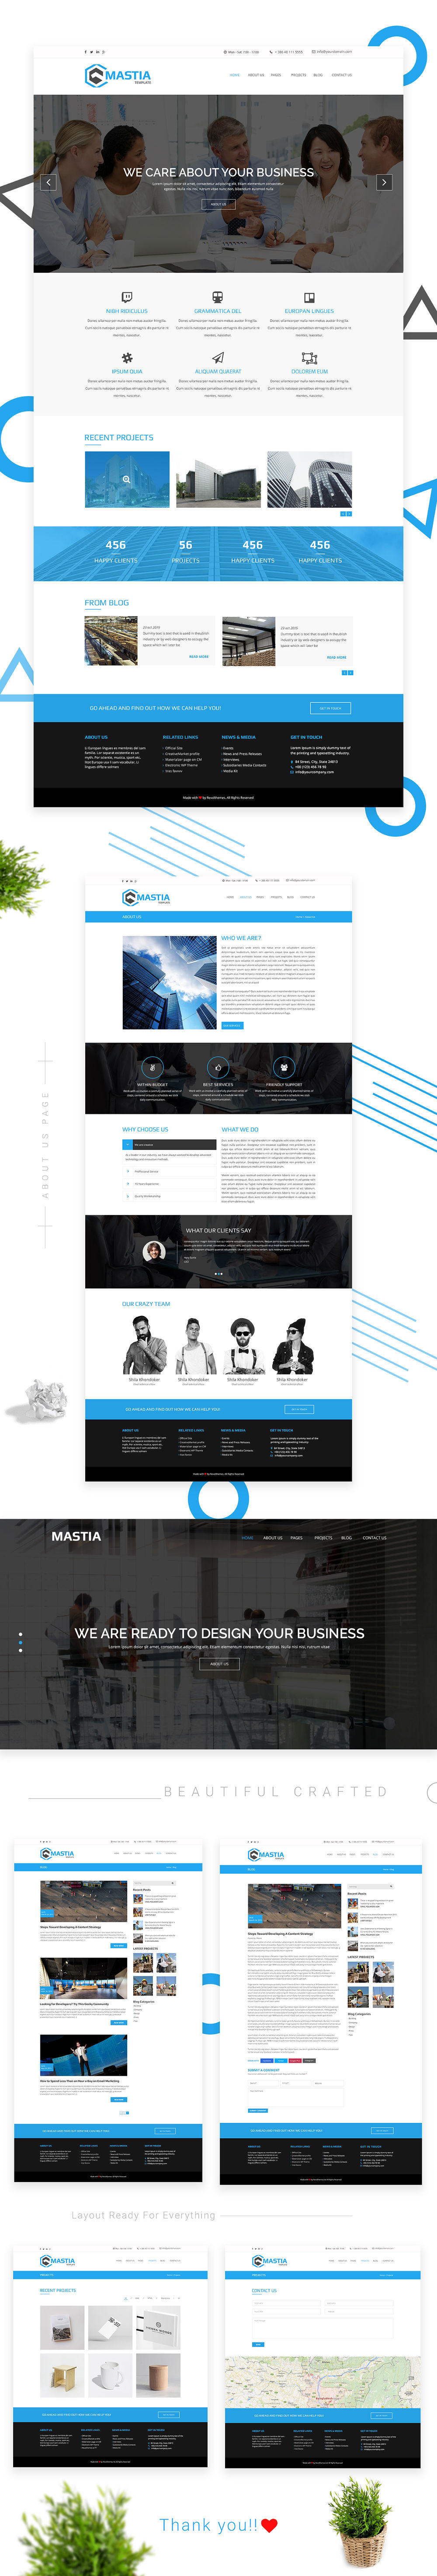 Mastia - Multipurpose Business Web Template Free PSD by Revol ThemesMastia - Multipurpose Business Web Template Free PSD